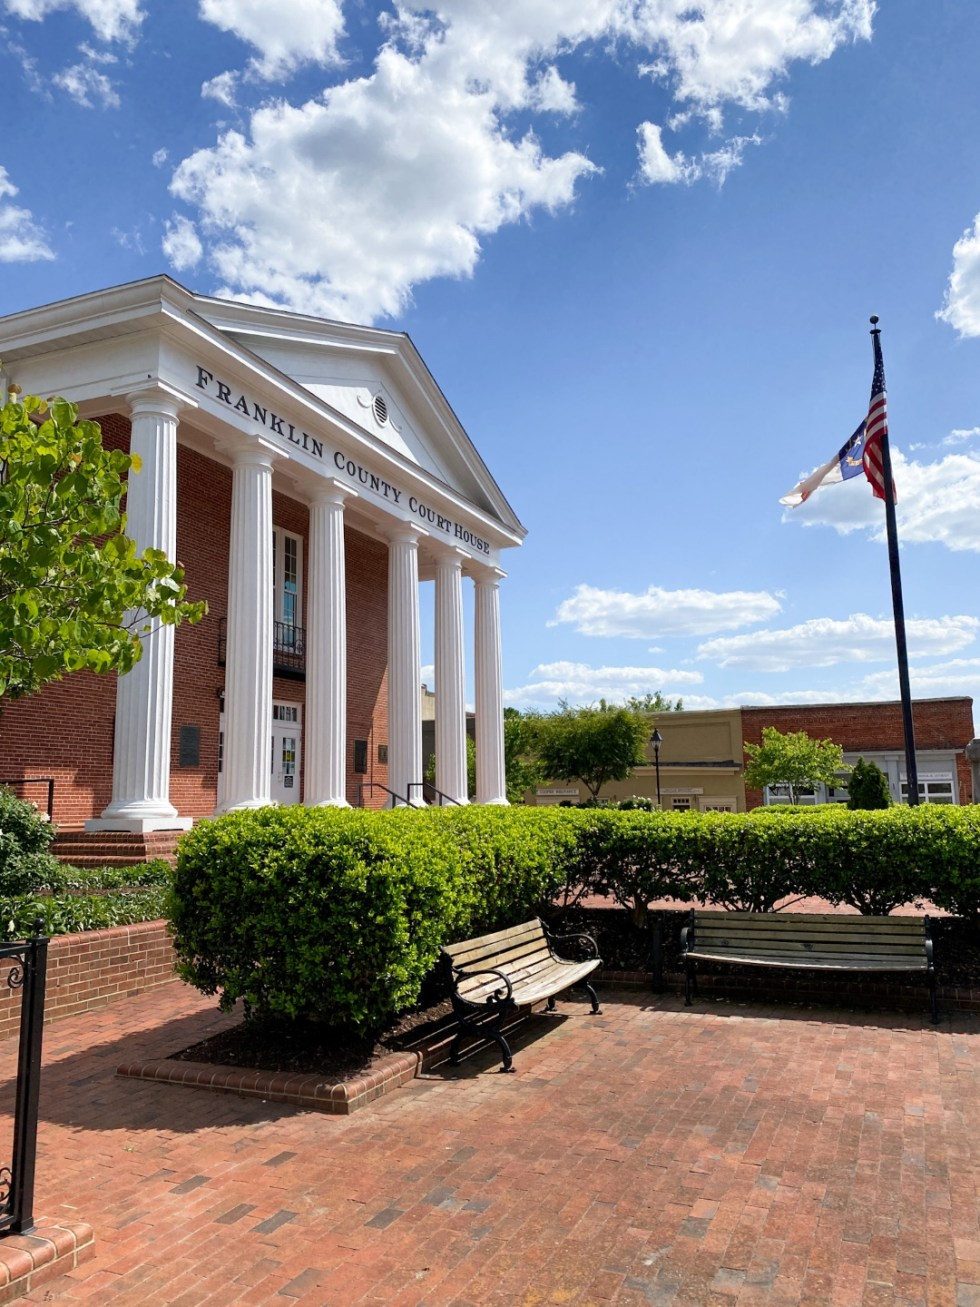 An Update on My North Carolina 100 County Tour - I'm Fixin' To - @imfixintoblog | Things to do in North Carolina by popular NC travel blog, I'm Fixin' To: image of Franklin County courthouse.